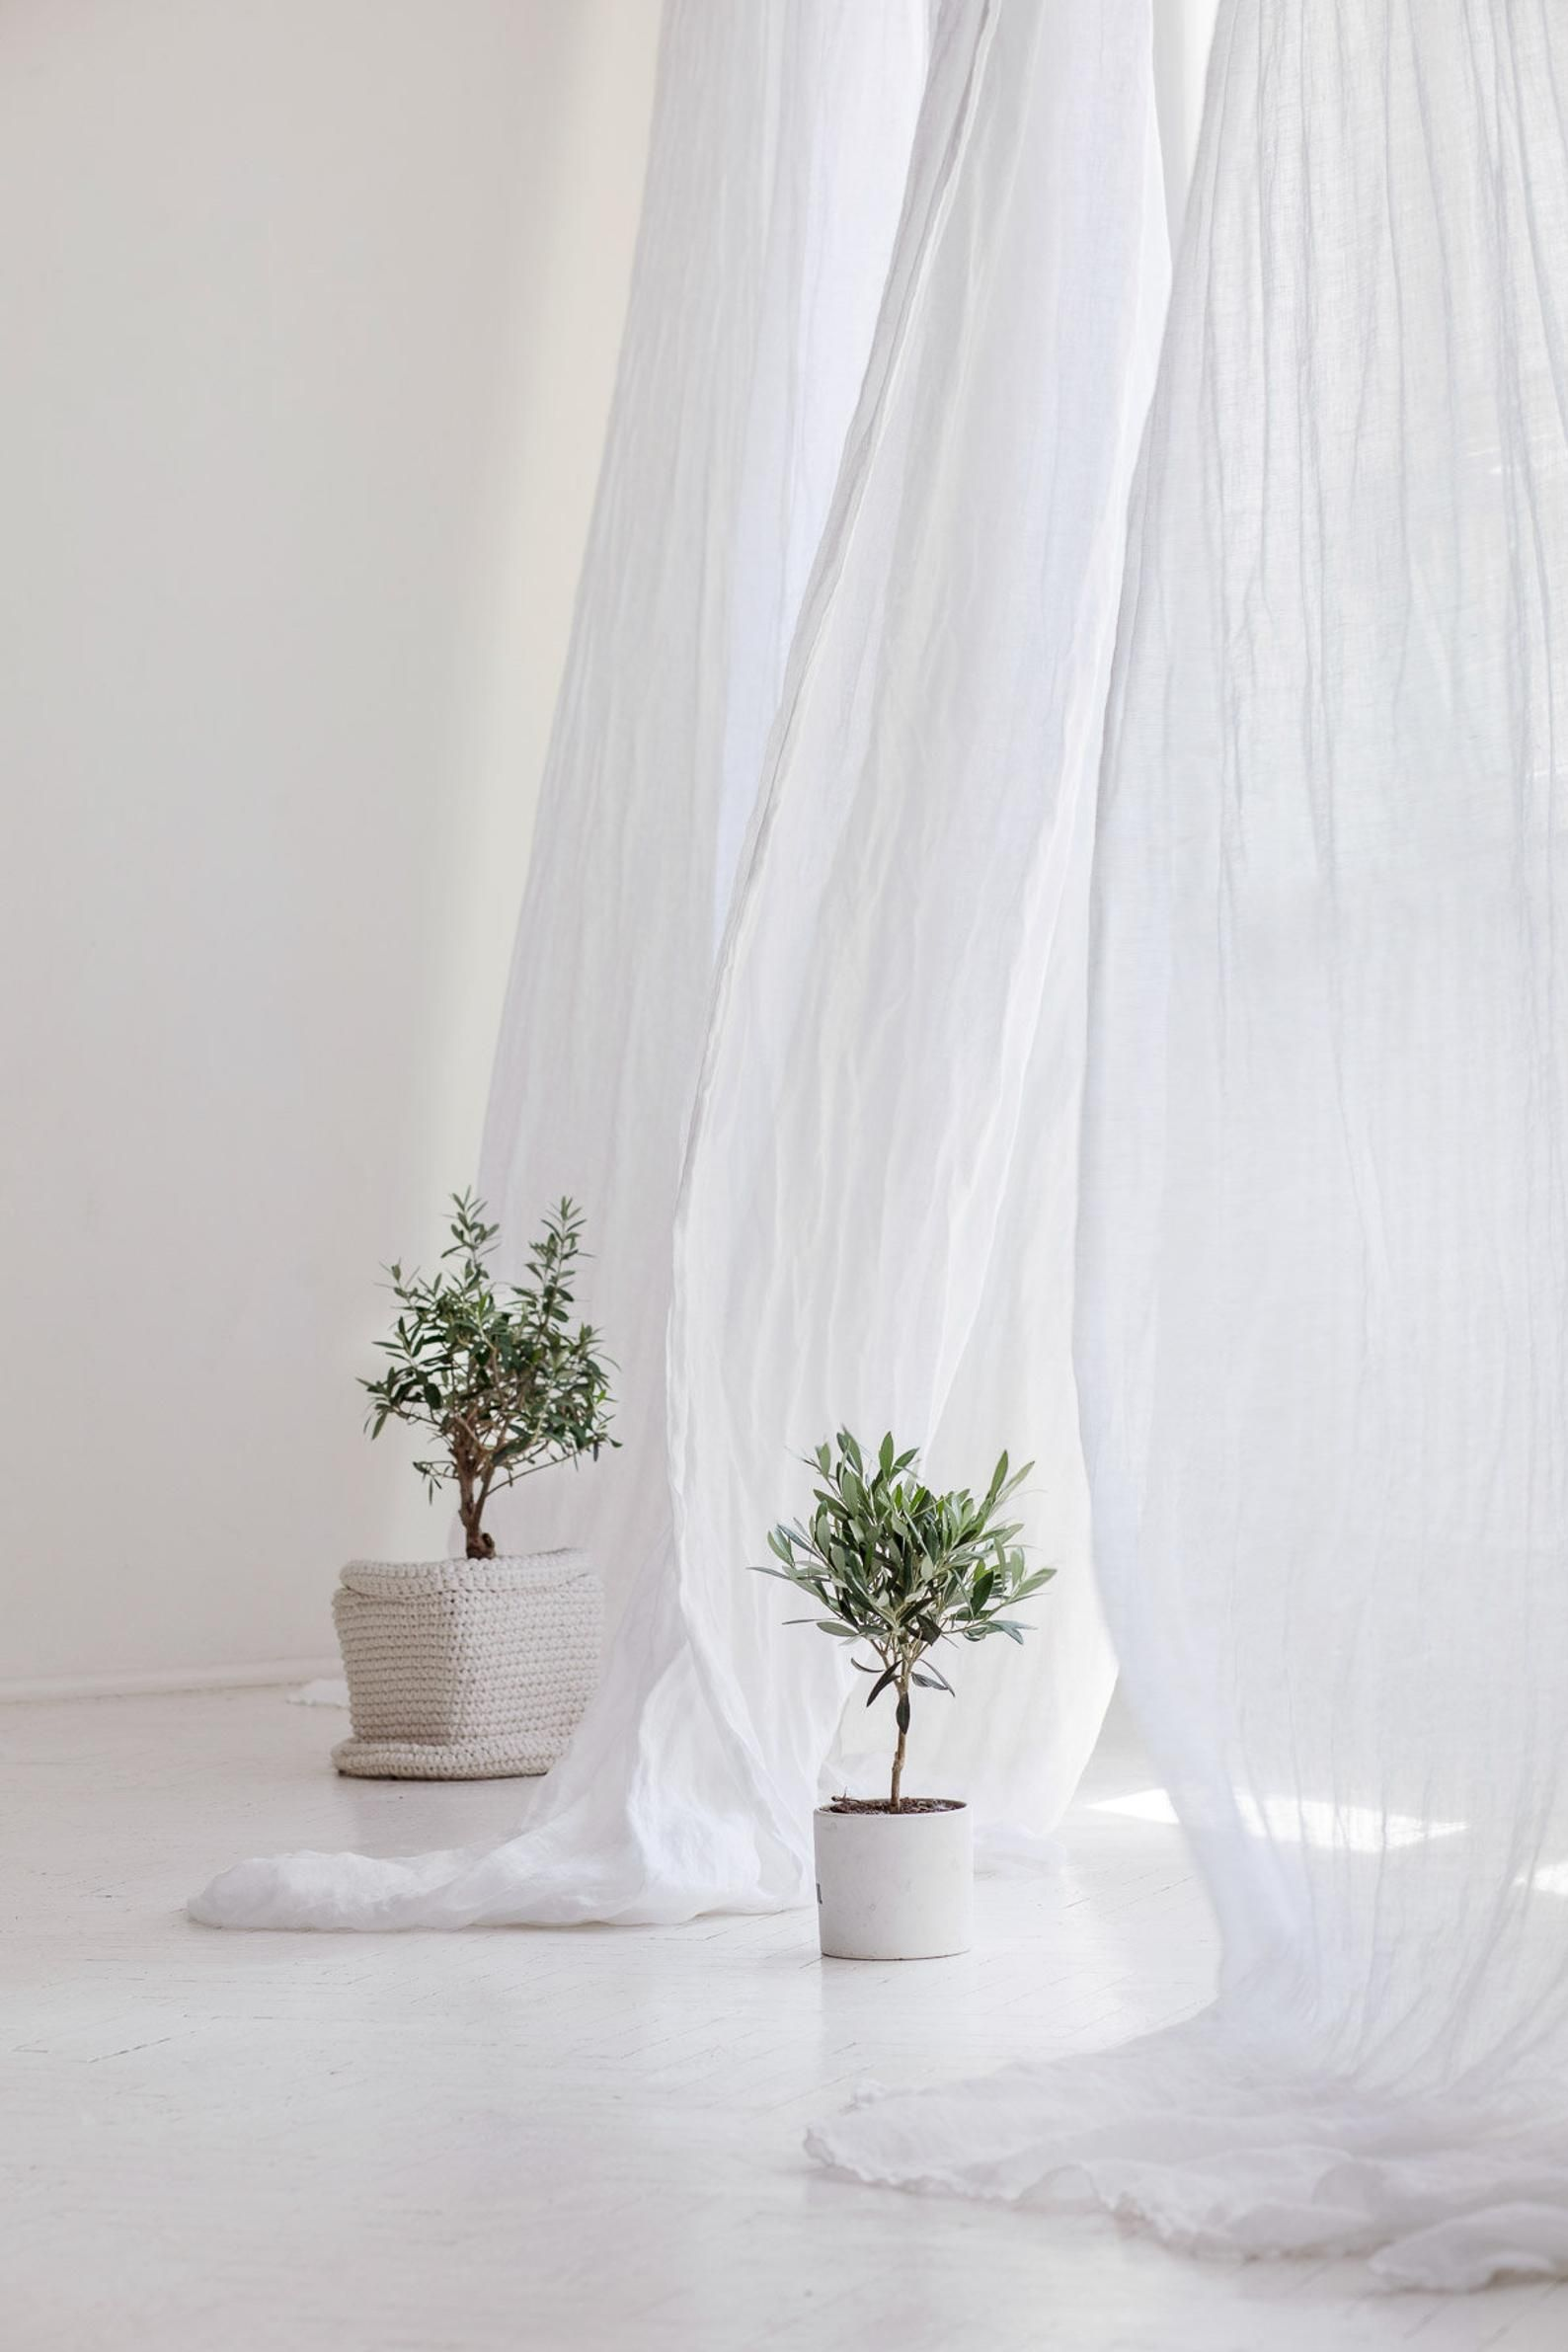 Ethereal Linen Curtains Bed Drape Linen Curtain Panel Light Etsy In 2021 White Linen Curtains Sheer Linen Curtains Linen Curtains